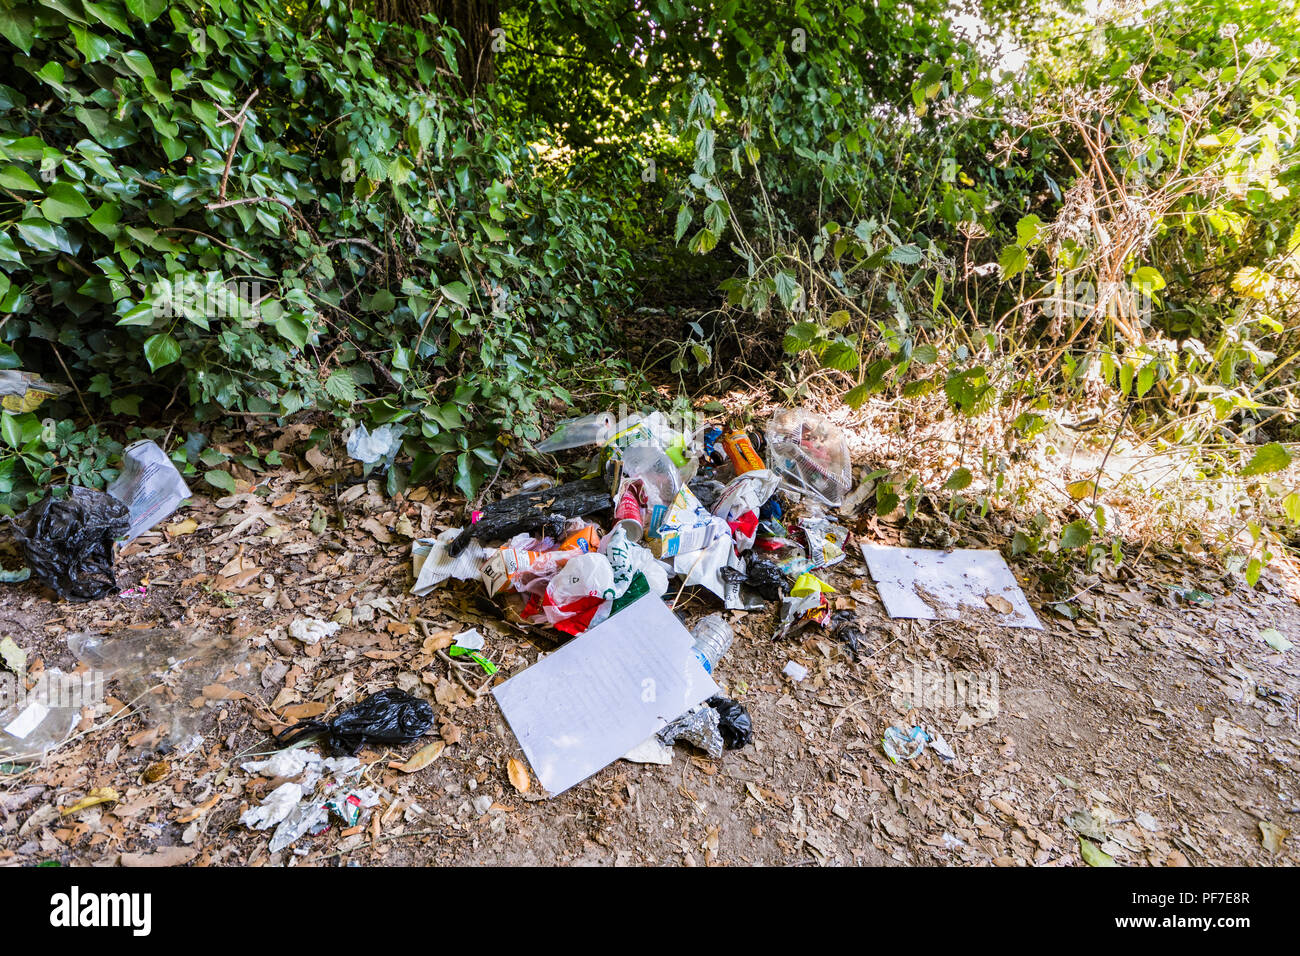 Pile of loose litter left behind in the countryside in the UK. Discarded rubbish on the ground. - Stock Image